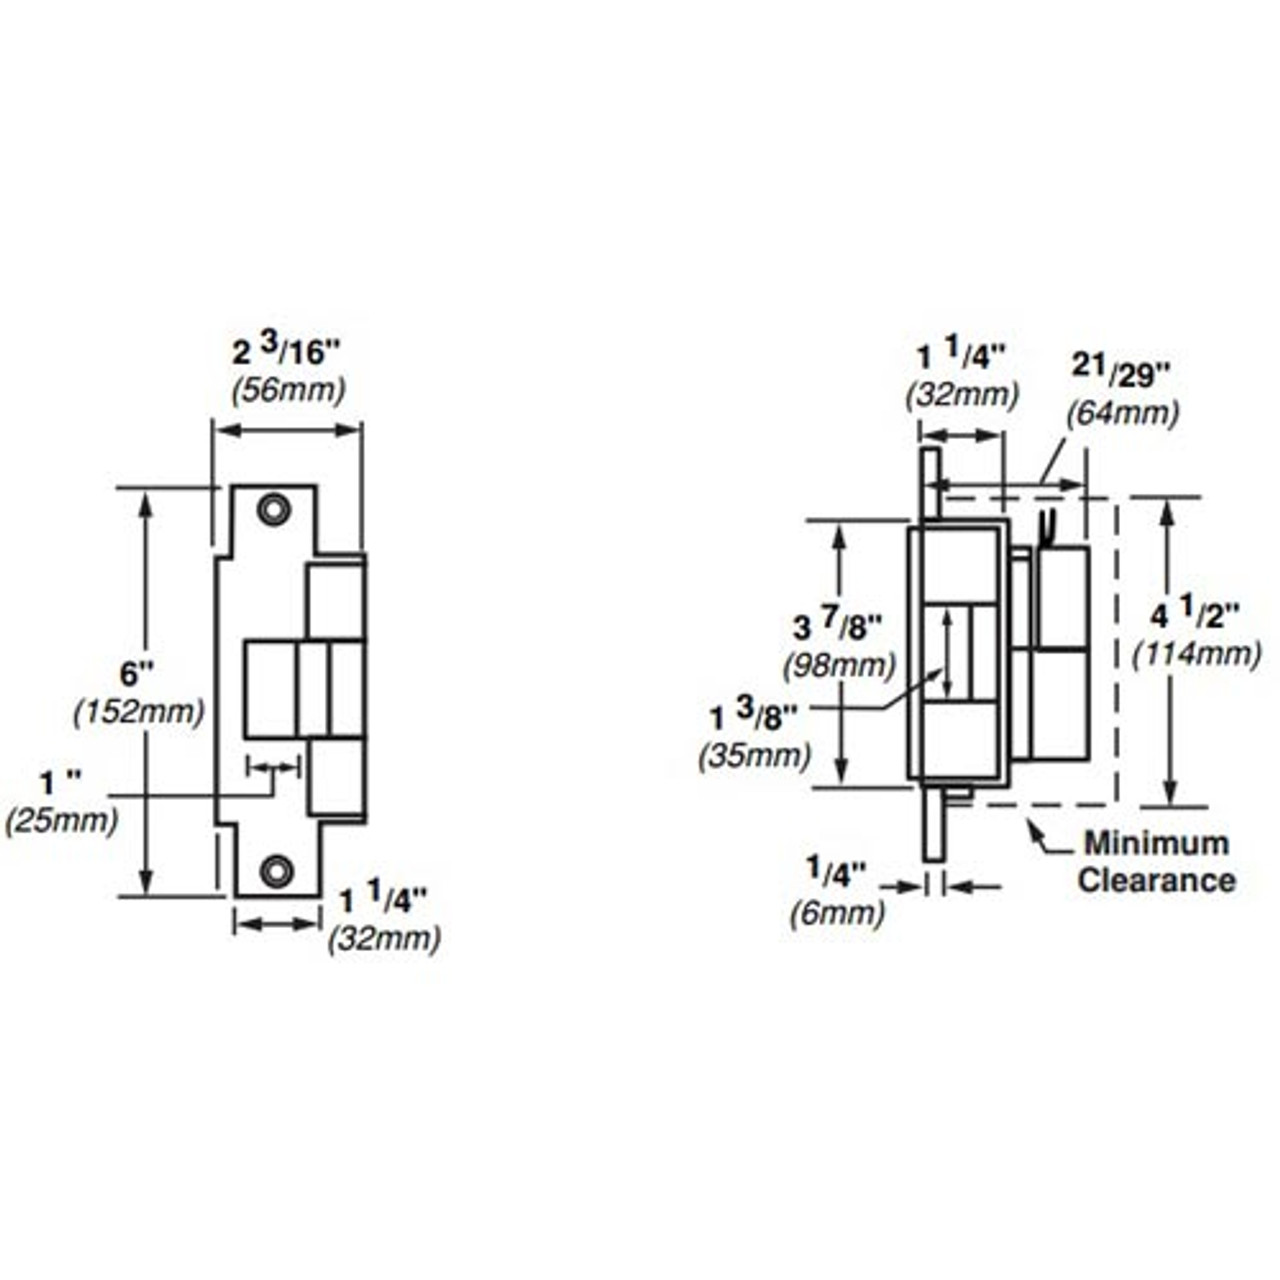 6213-FS-DS-LC-12VDC-US3 Von Duprin Electric Strike for Mortise or Cylindrical Locksets in Bright Brass Finish